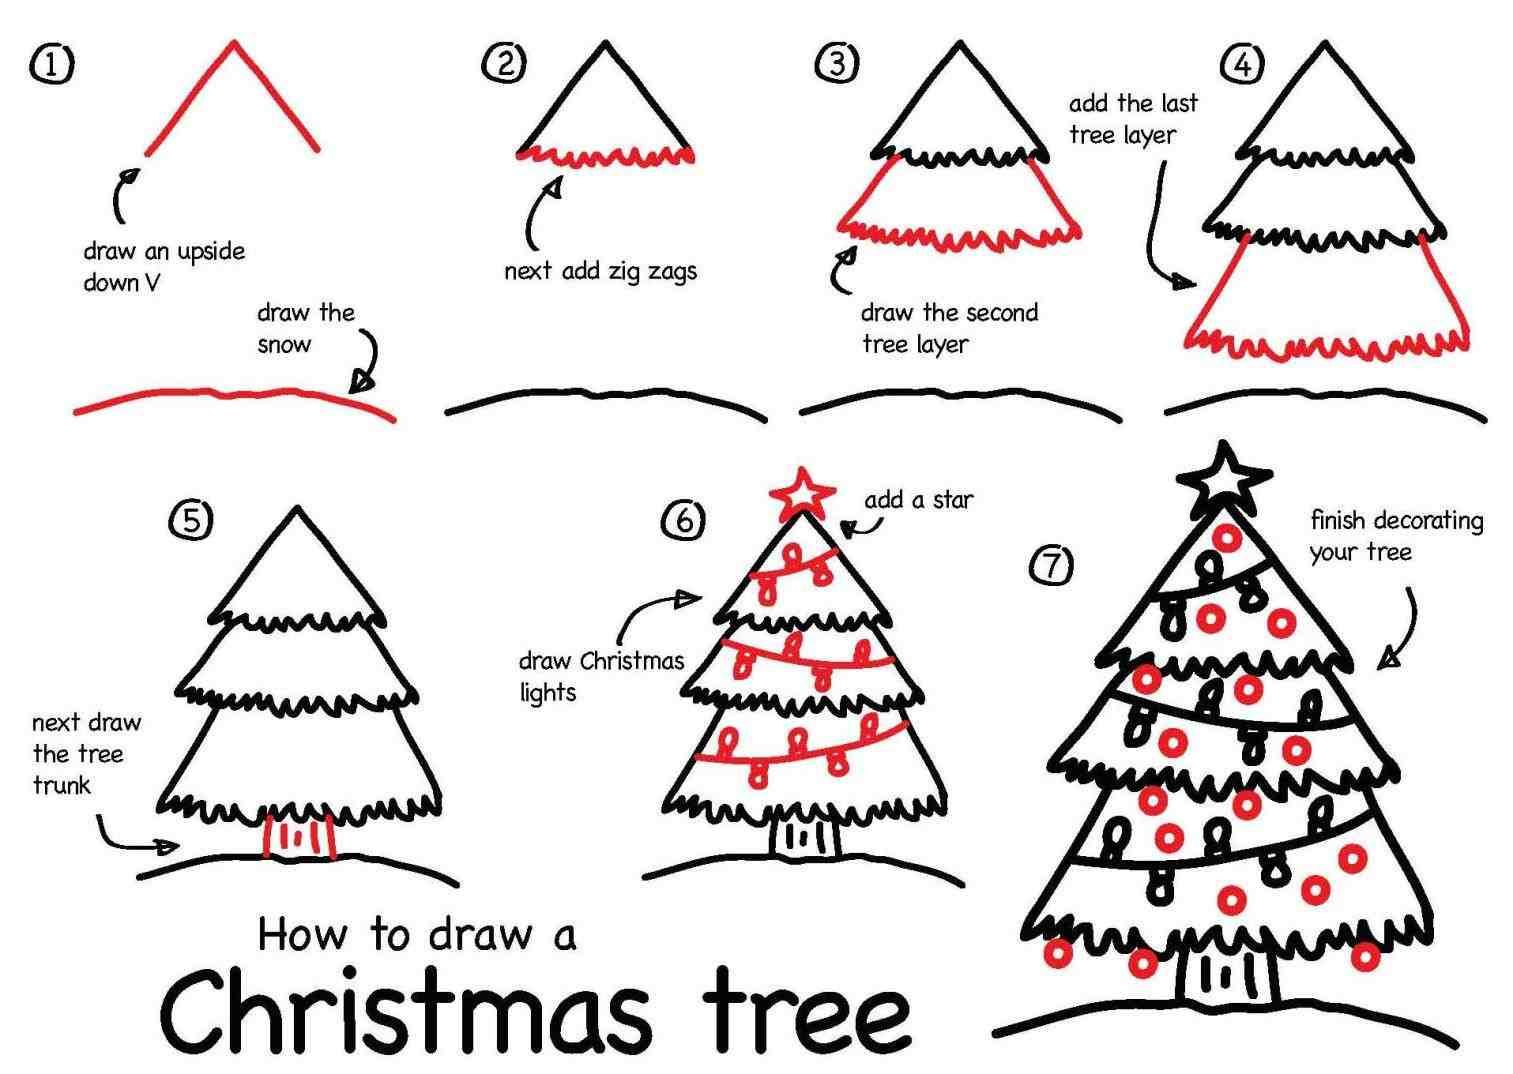 How to draw an ornament